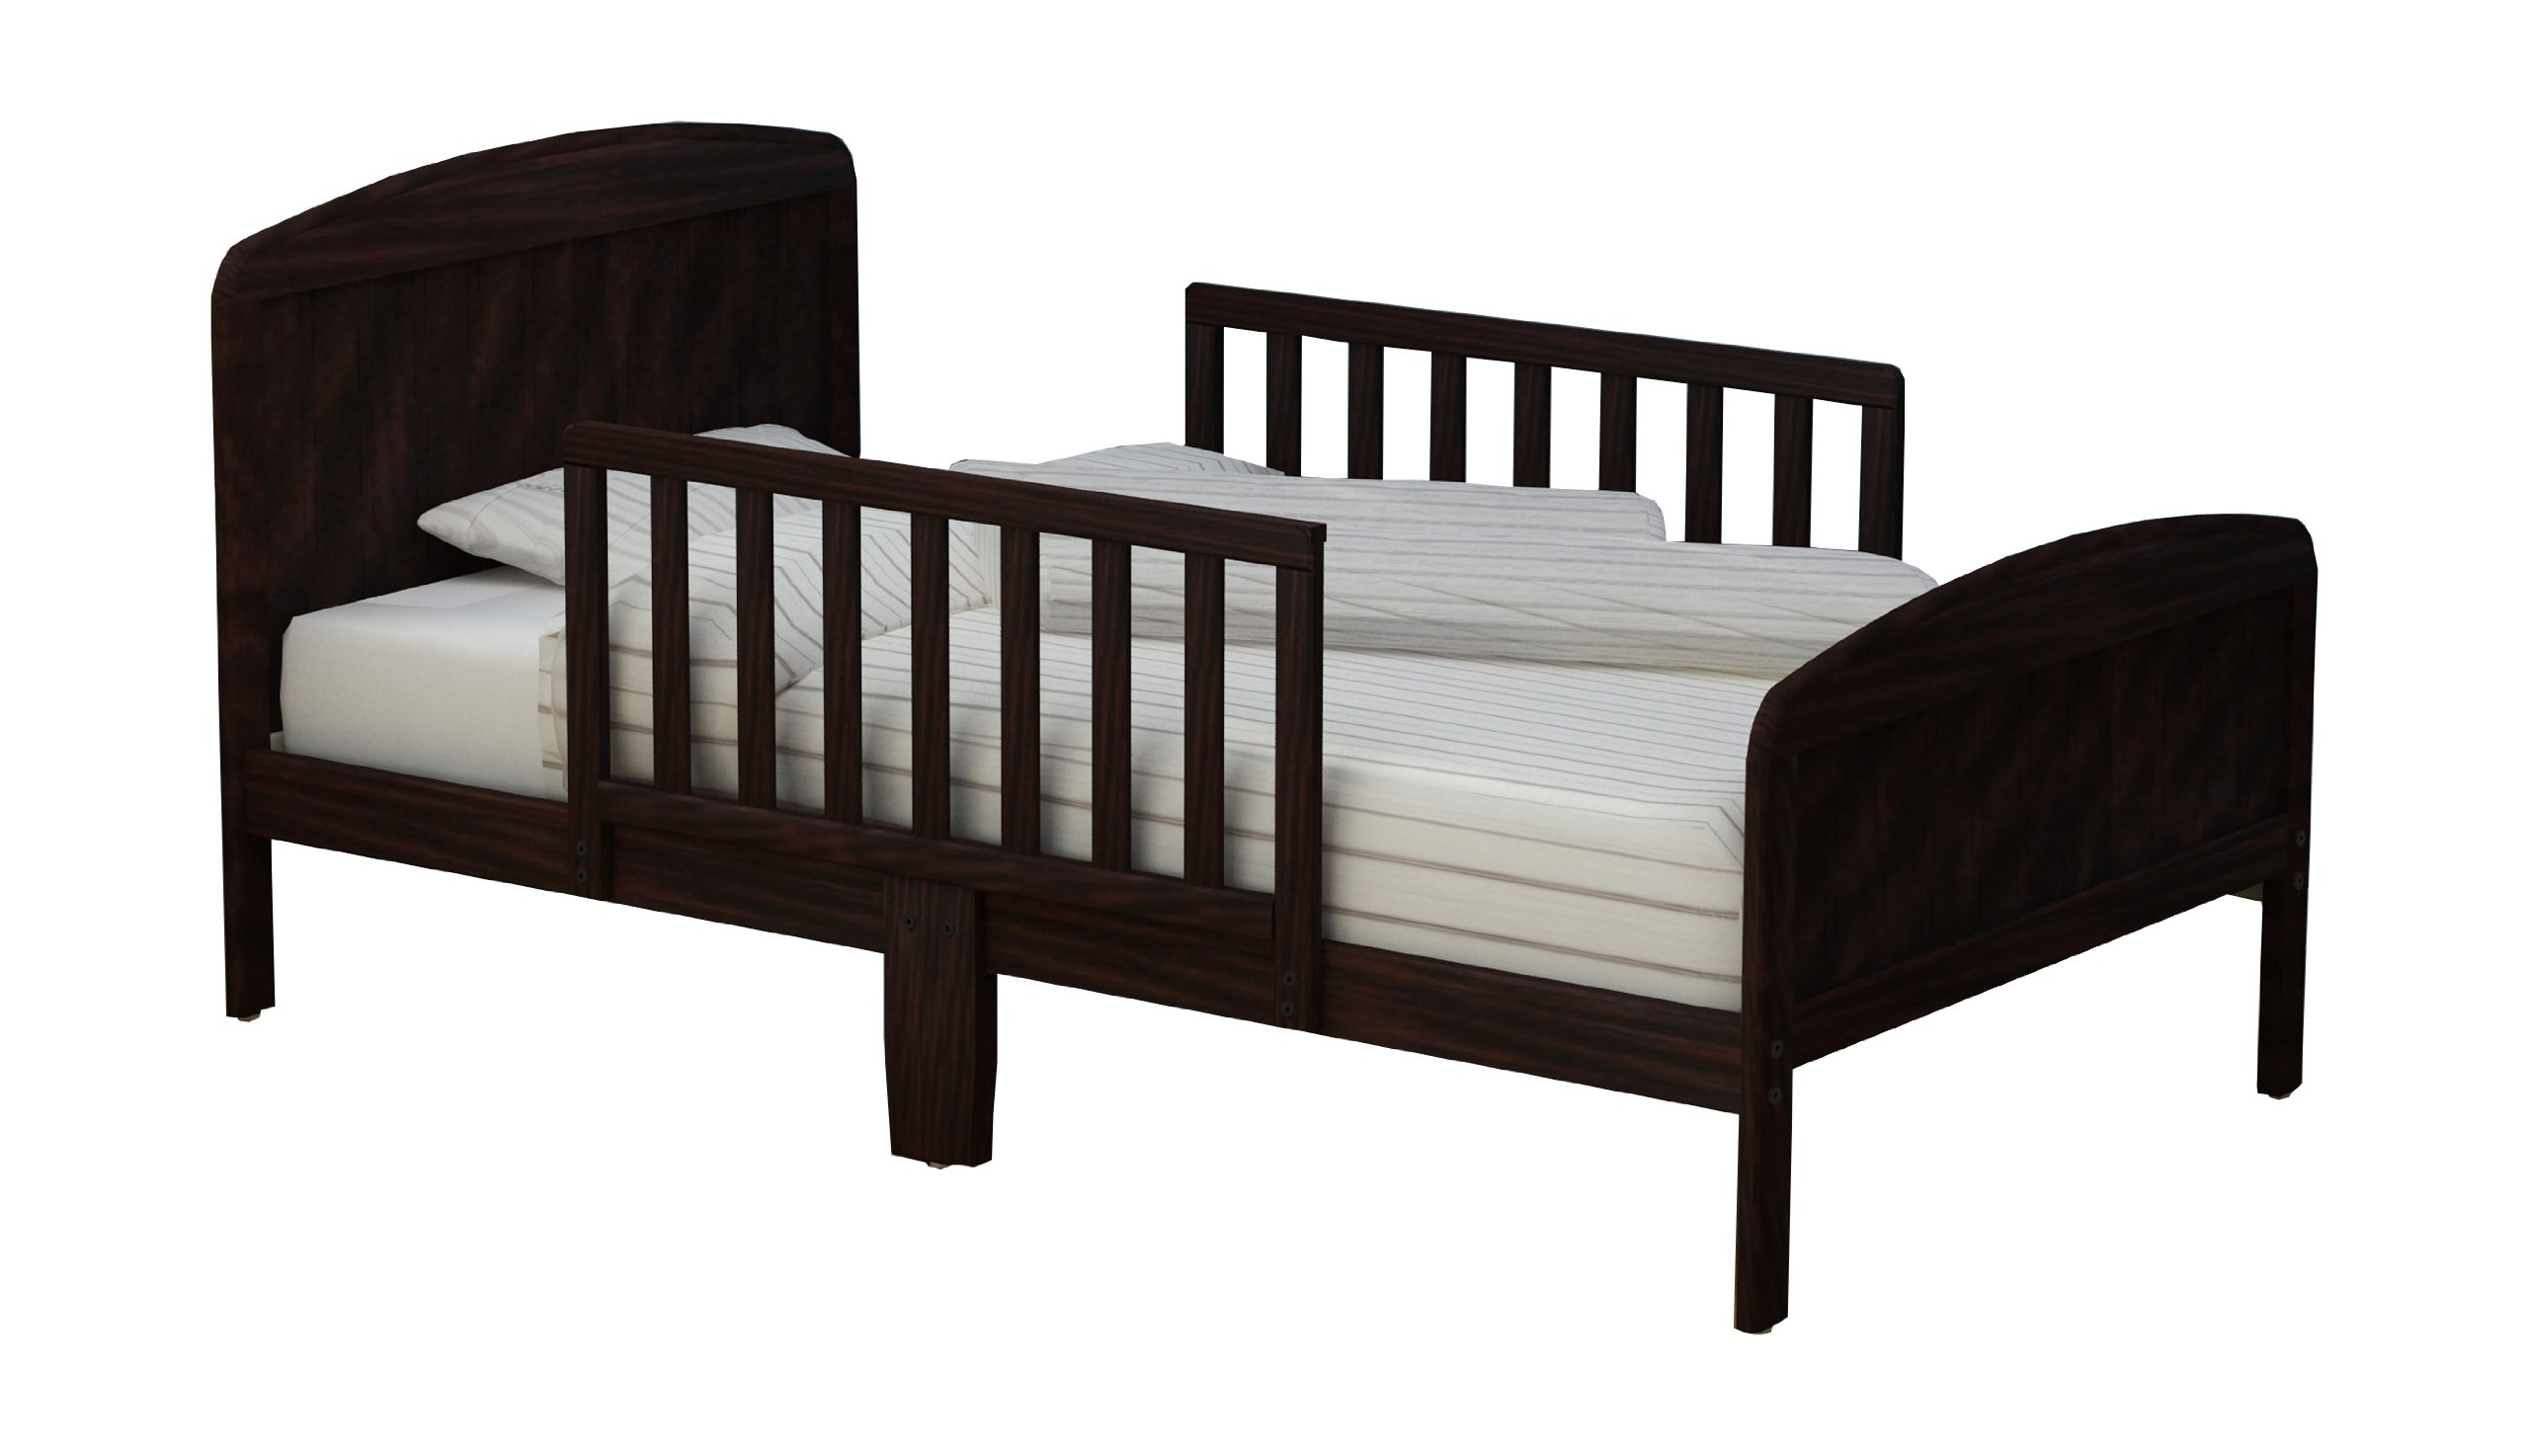 RUSSELL CHILDREN Products Harrisburg Wood Toddler Bed, Espresso by RUSSELL CHILDREN